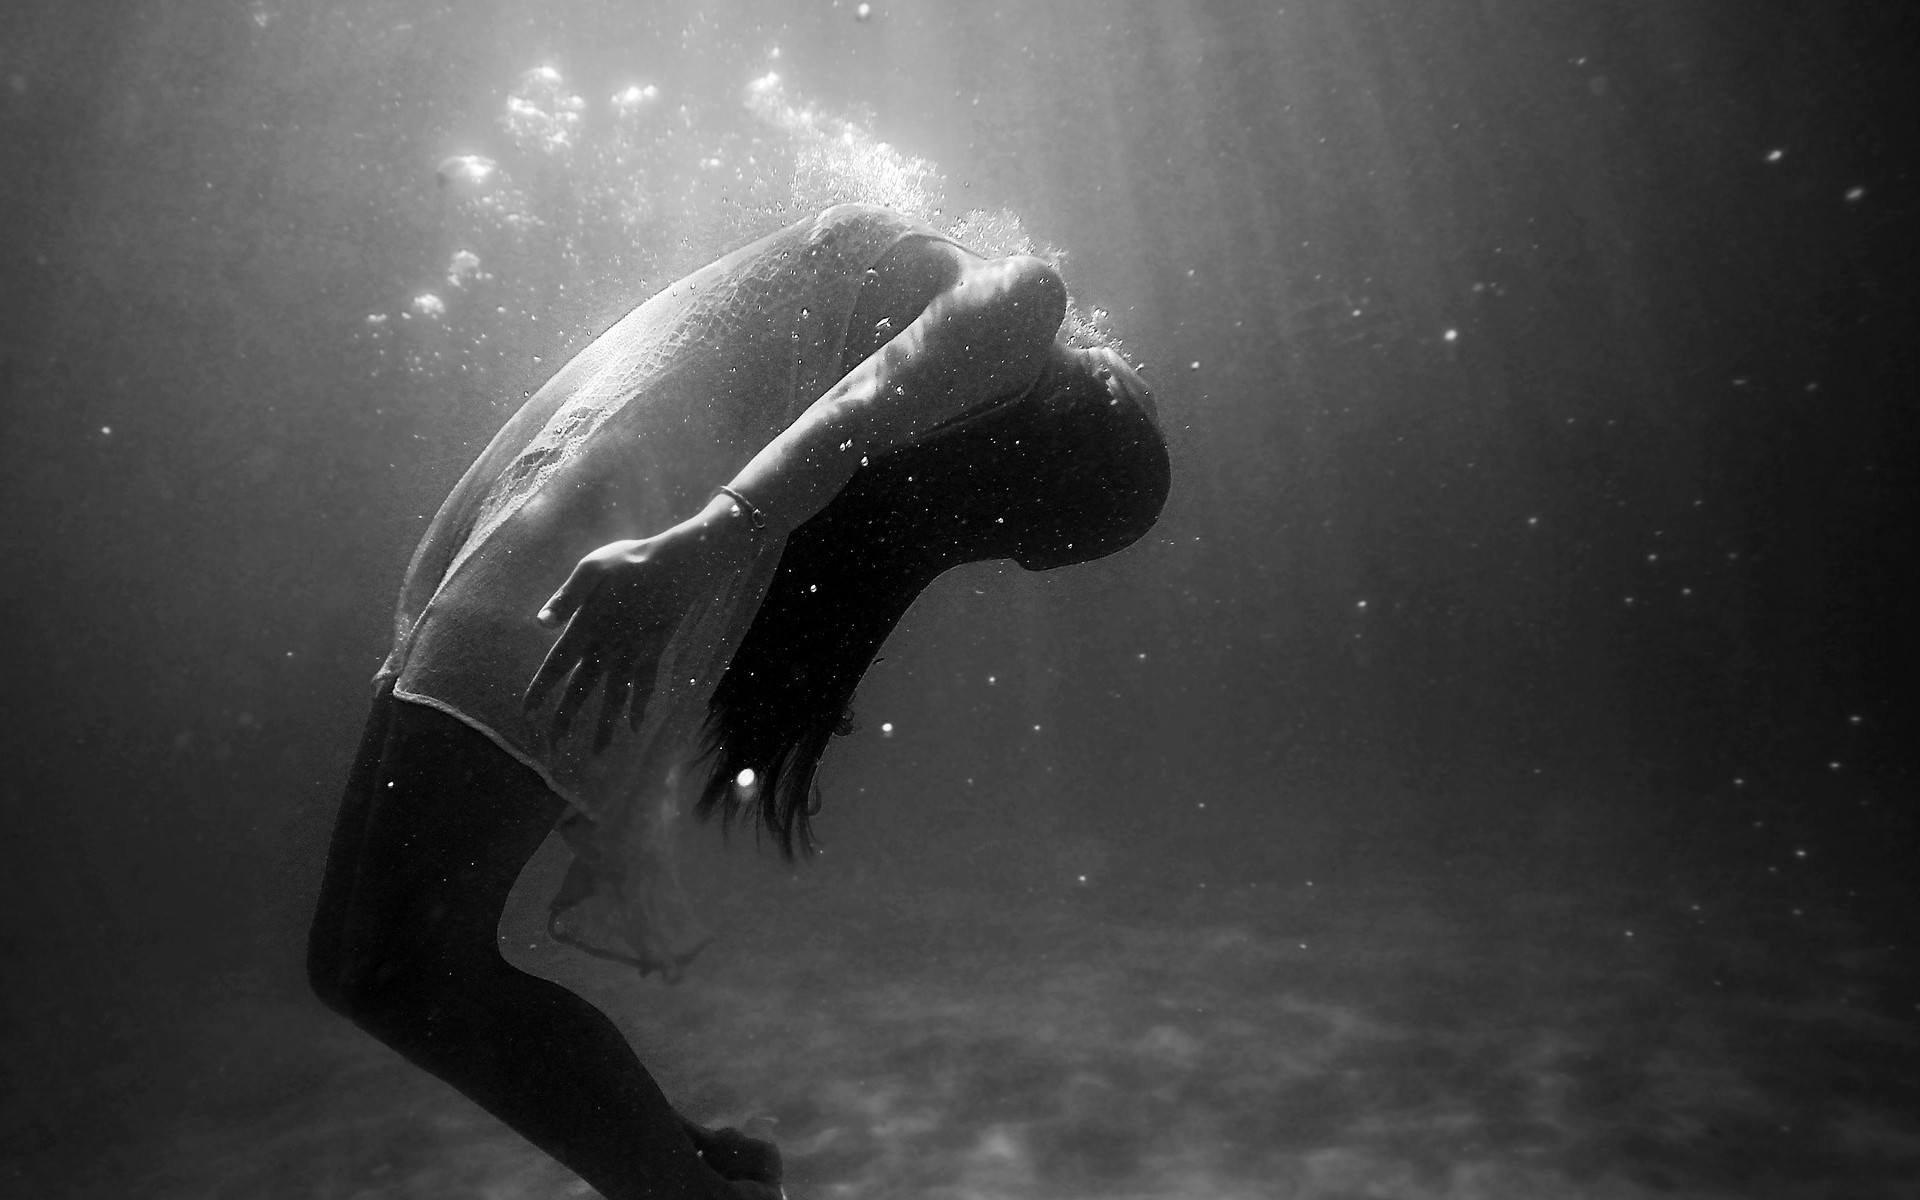 Image: Black and white photograph of a woman submerged beneath water.